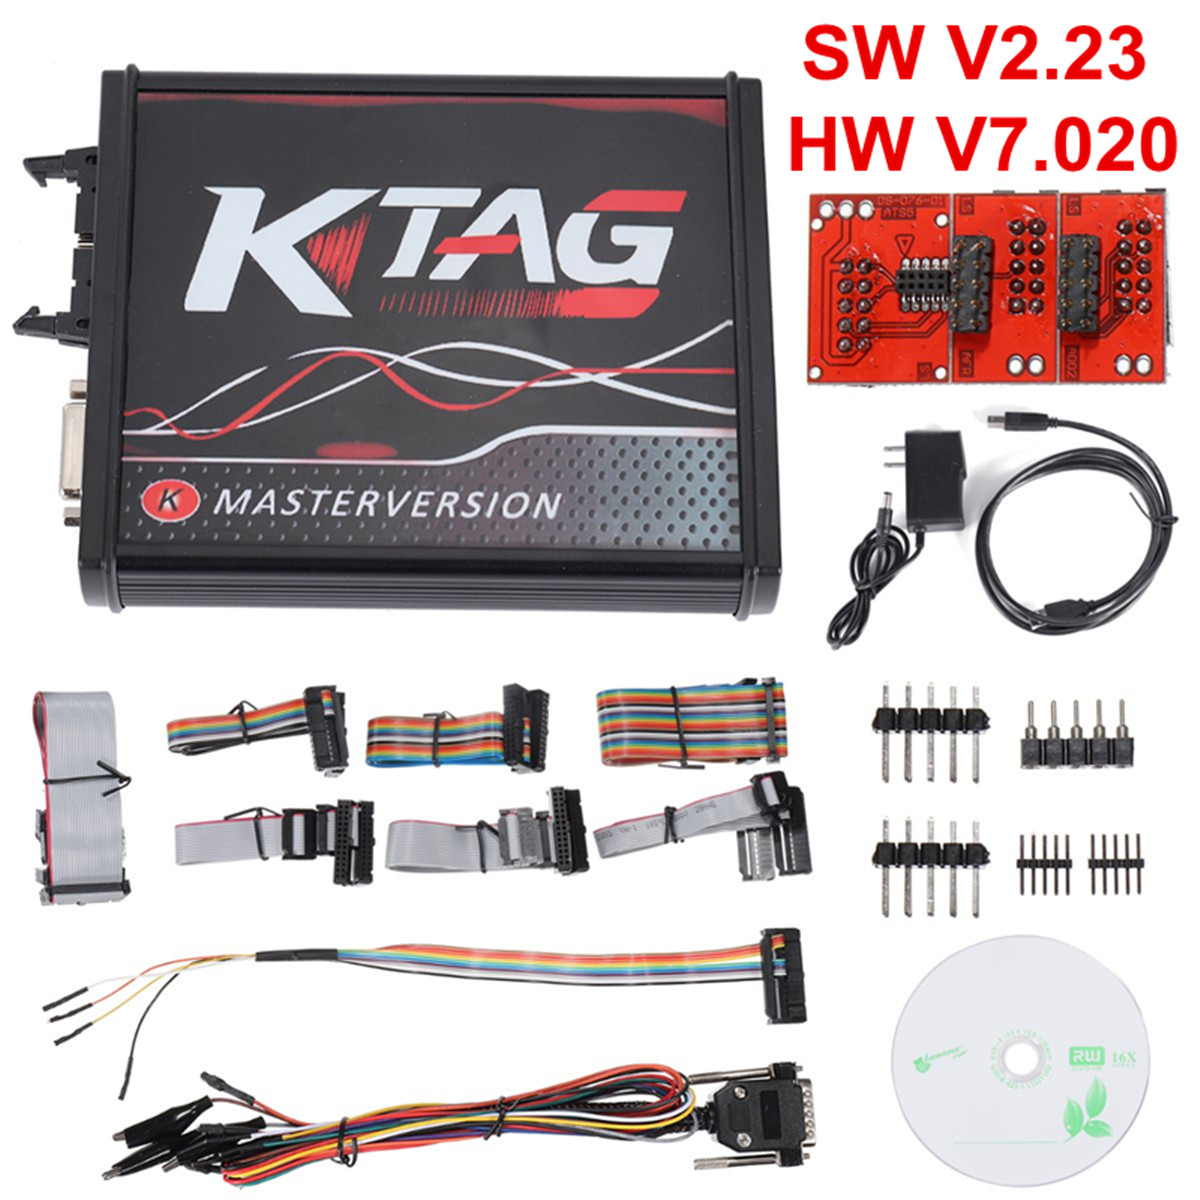 For V2.23 KTAG ECU Programmer Cable Tool V7.020 PCB Online Version Unlimited Token Auto Car Vehicles Repair Tools Diagnosis KitFor V2.23 KTAG ECU Programmer Cable Tool V7.020 PCB Online Version Unlimited Token Auto Car Vehicles Repair Tools Diagnosis Kit